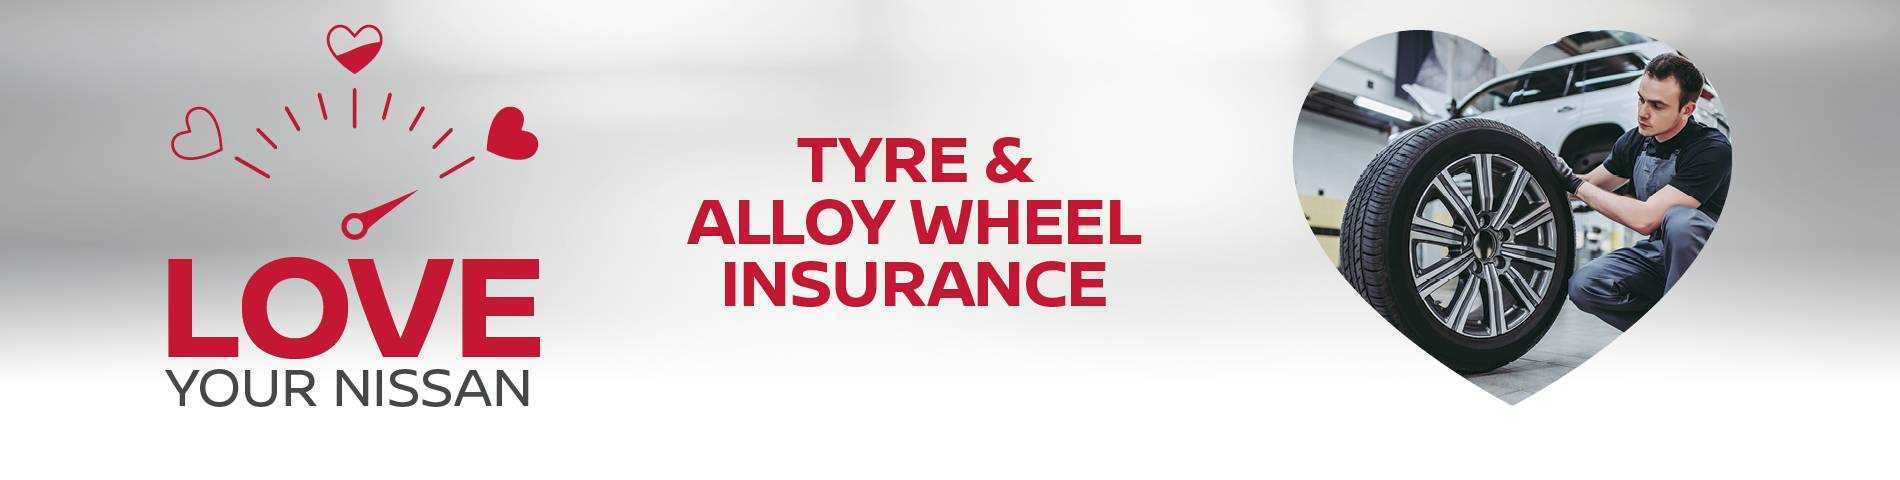 Tyre & Alloy Insurance Banner